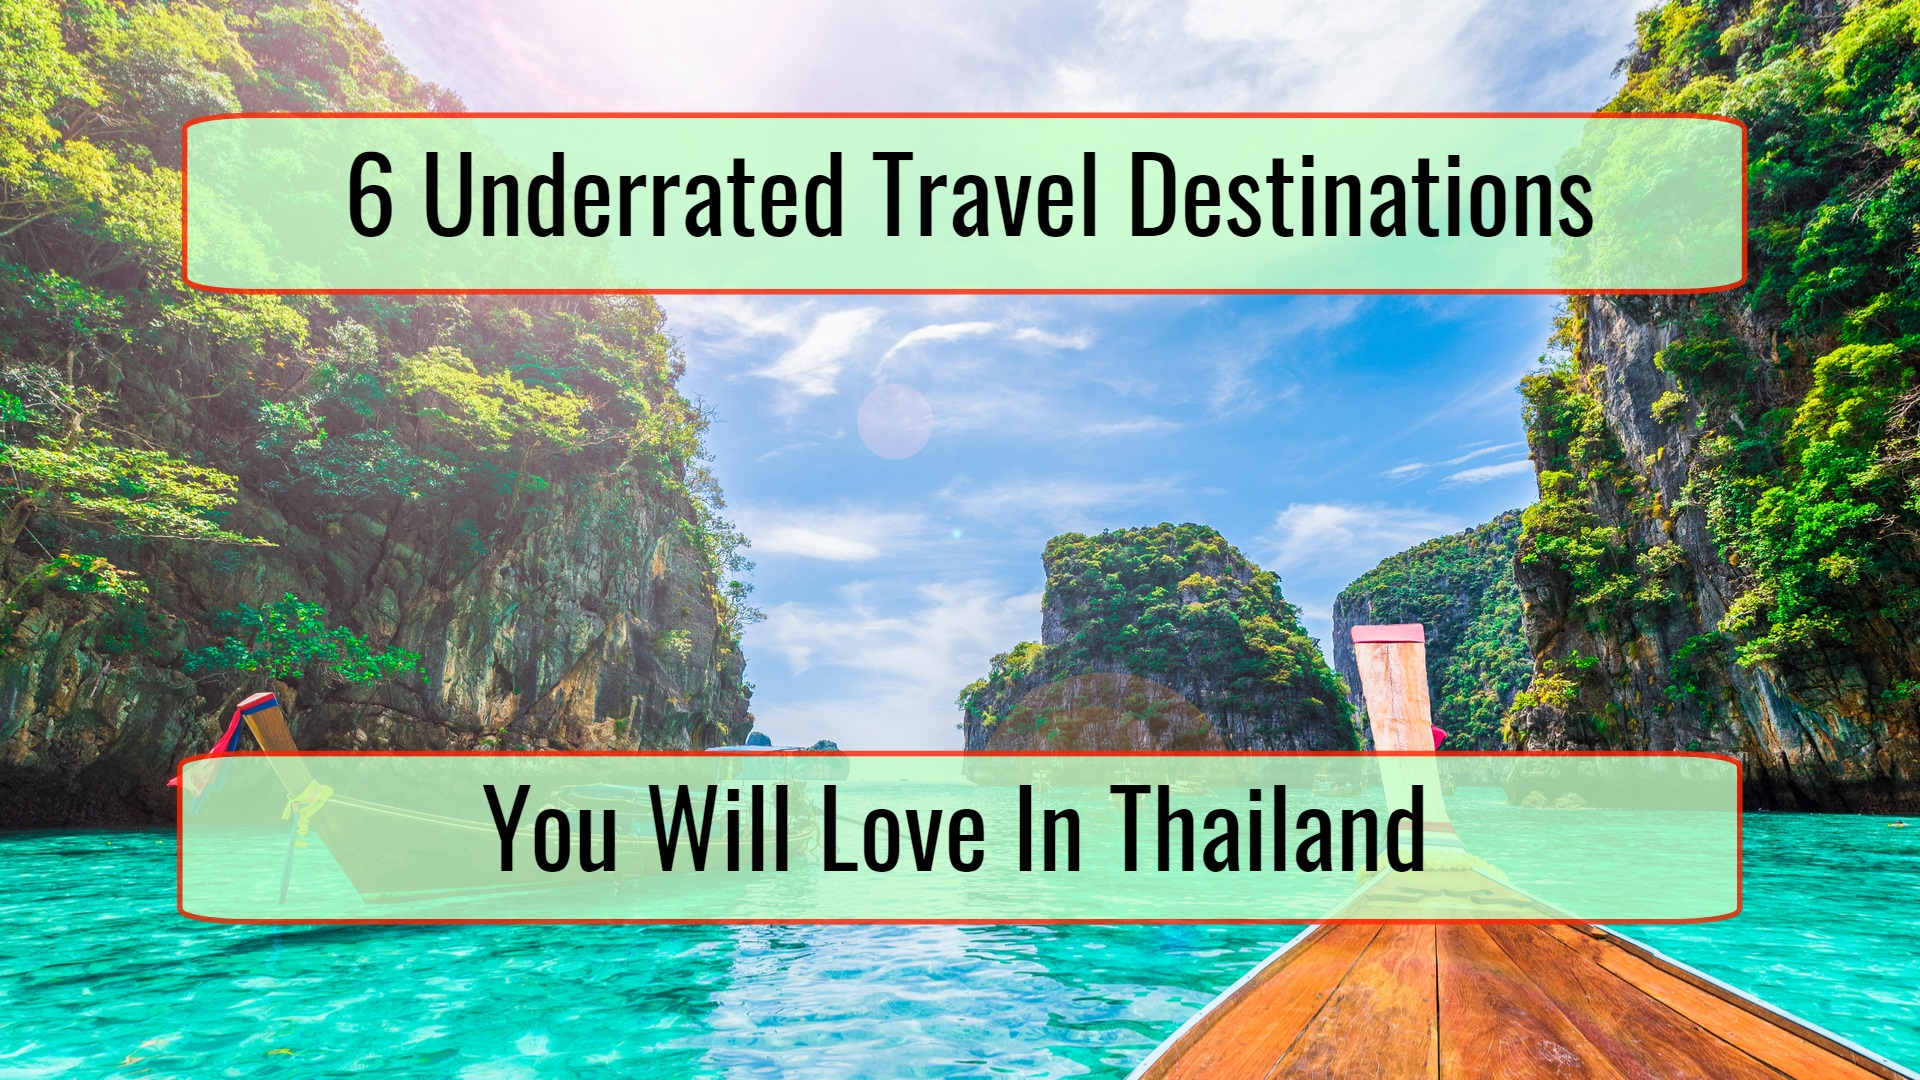 6 Underrated Travel Destinations You Will Love In Thailand